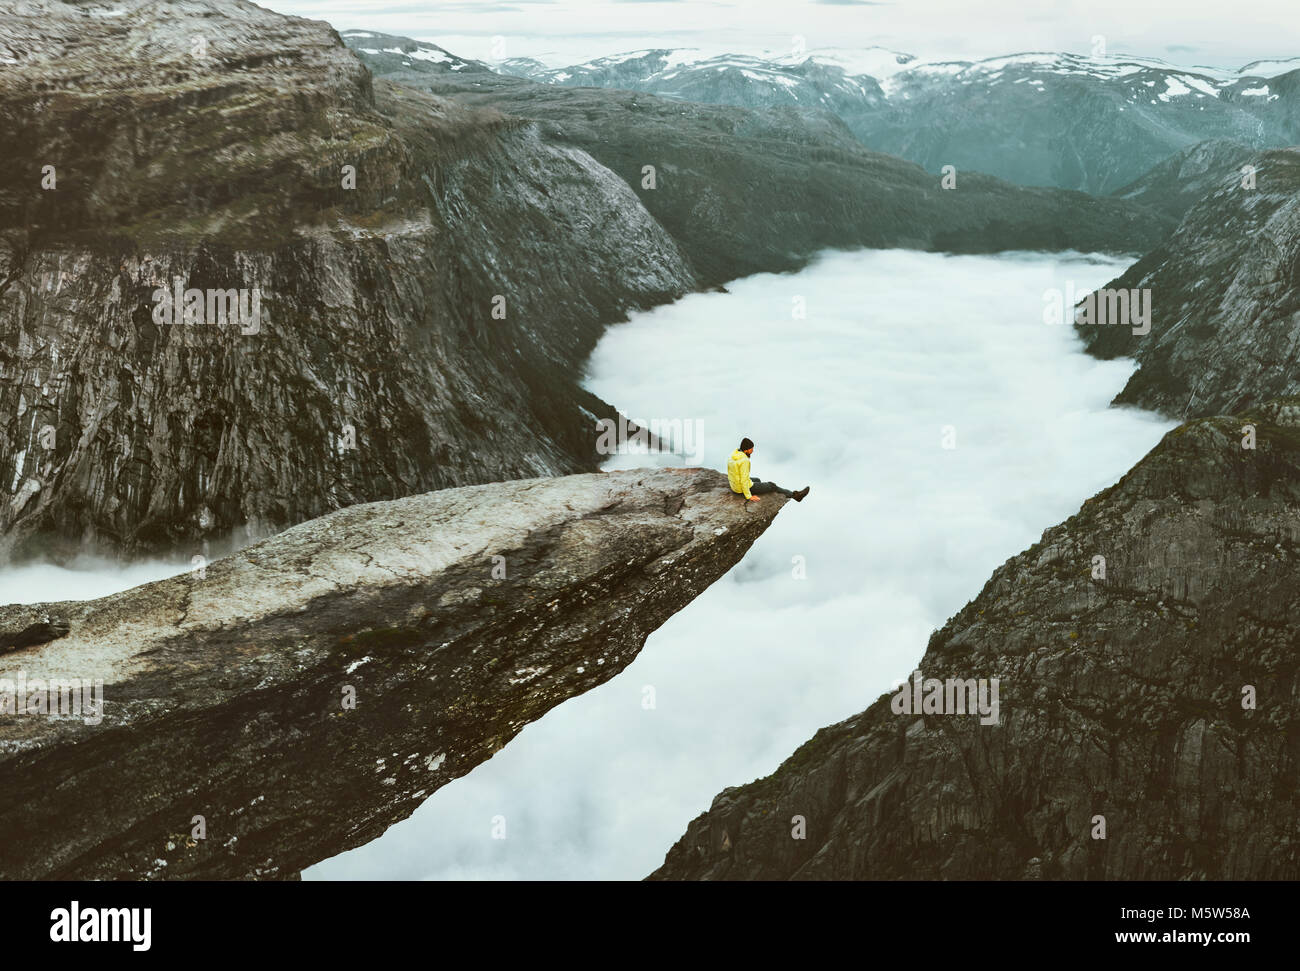 Man traveler on Trolltunga rocky cliff edge in Norway mountains Travel Lifestyle adventure emotional concept extreme - Stock Image